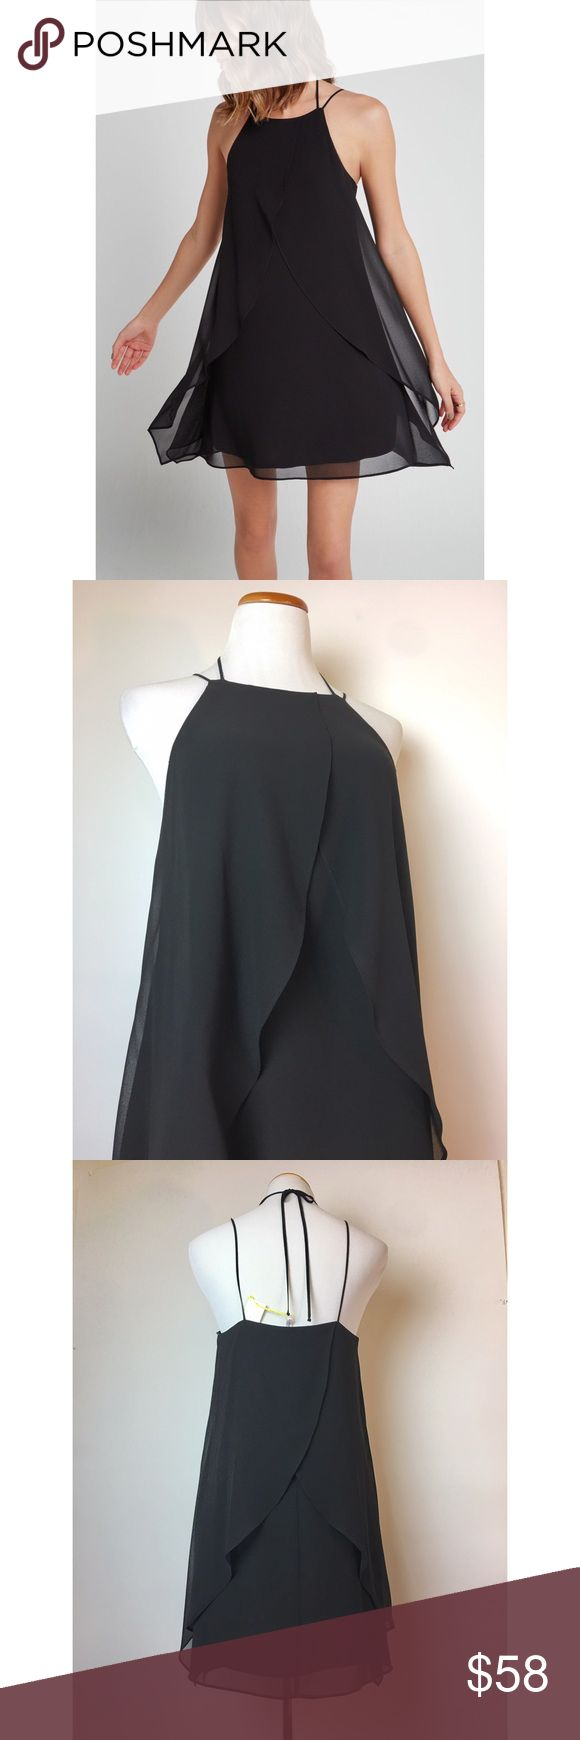 Stunning black ruffle halter dress Must have LBD by BCBGeneration. Chiffon slip dress that flutters as you move with cross ruffle overlay in front and back. Halter tie neck and straps. Fully lined. BCBGeneration Dresses